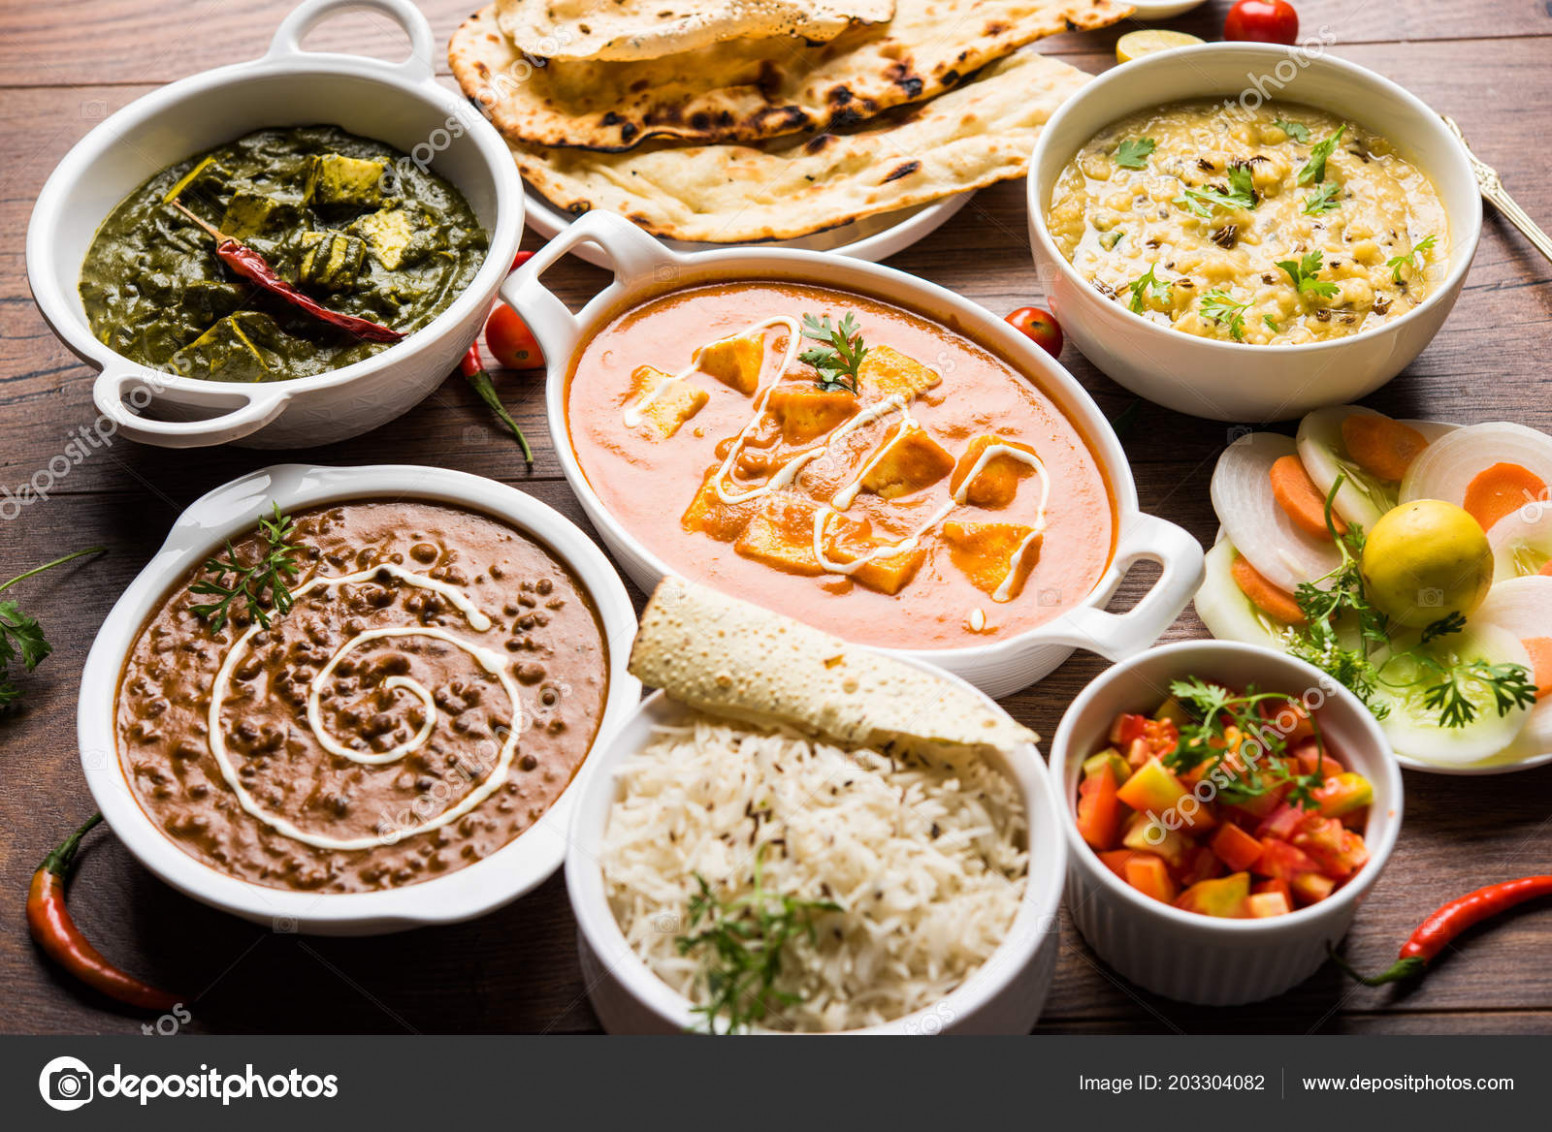 Assorted Indian Food Lunch Dinner Rice Lentils Paneer Dal ..